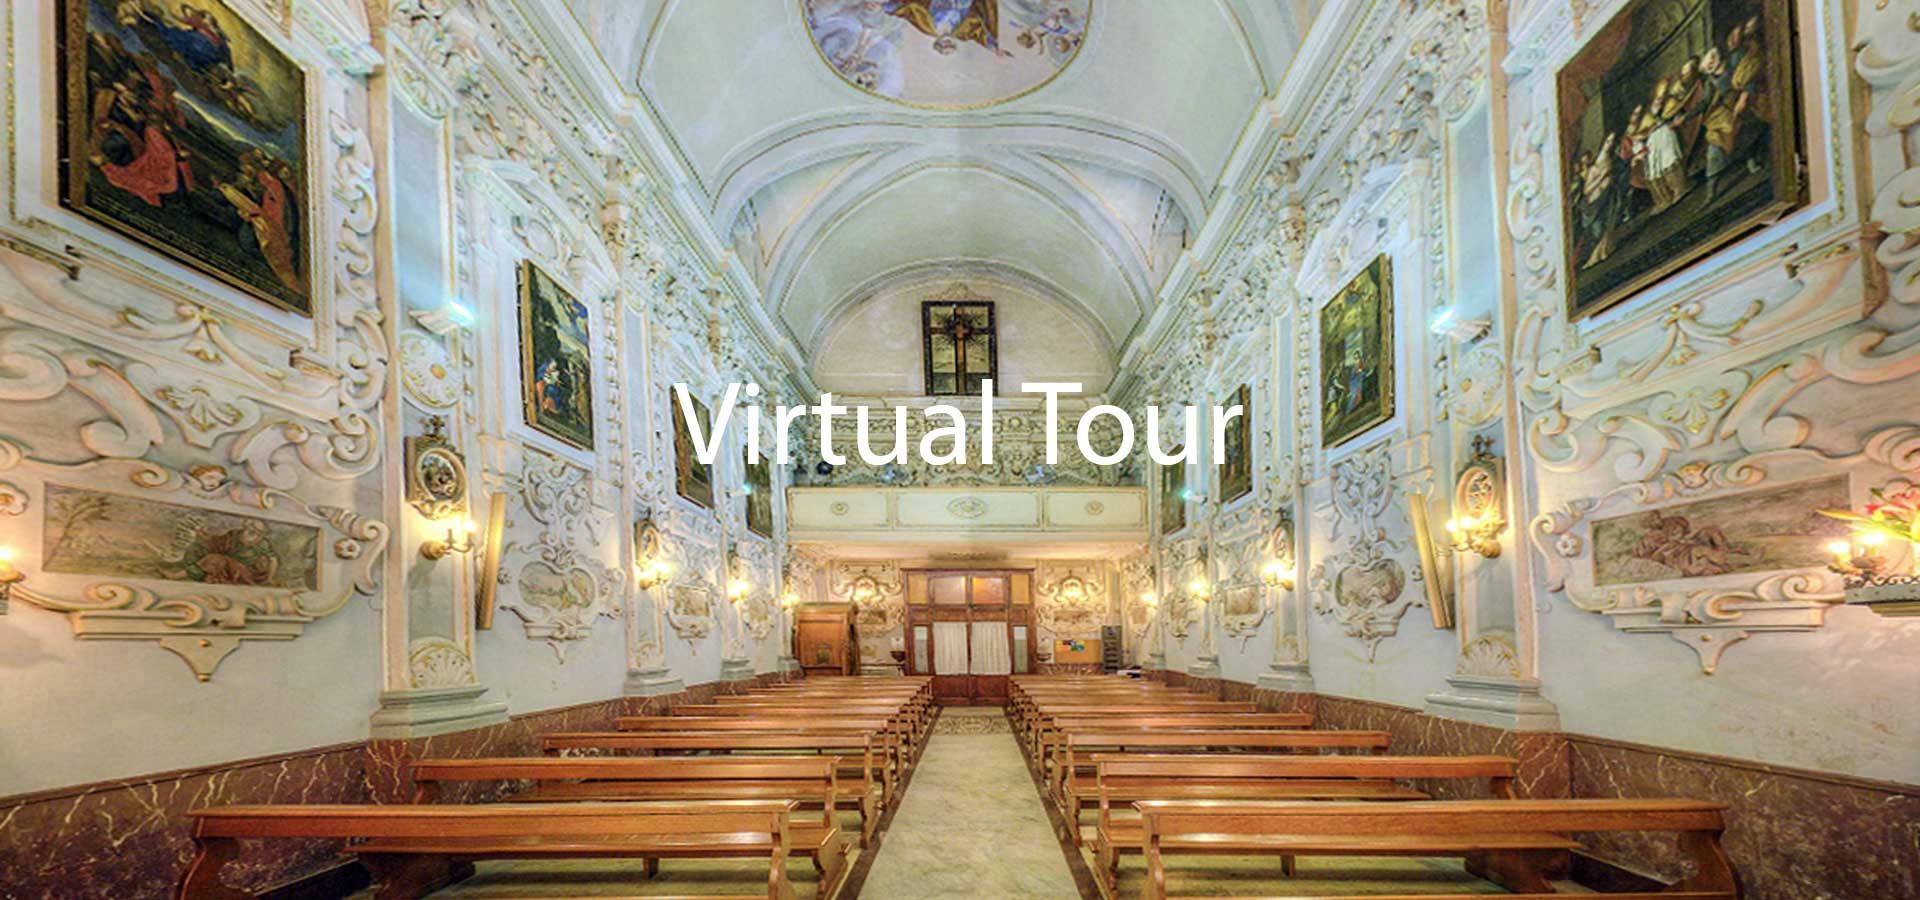 Tour Virtuali Taormina